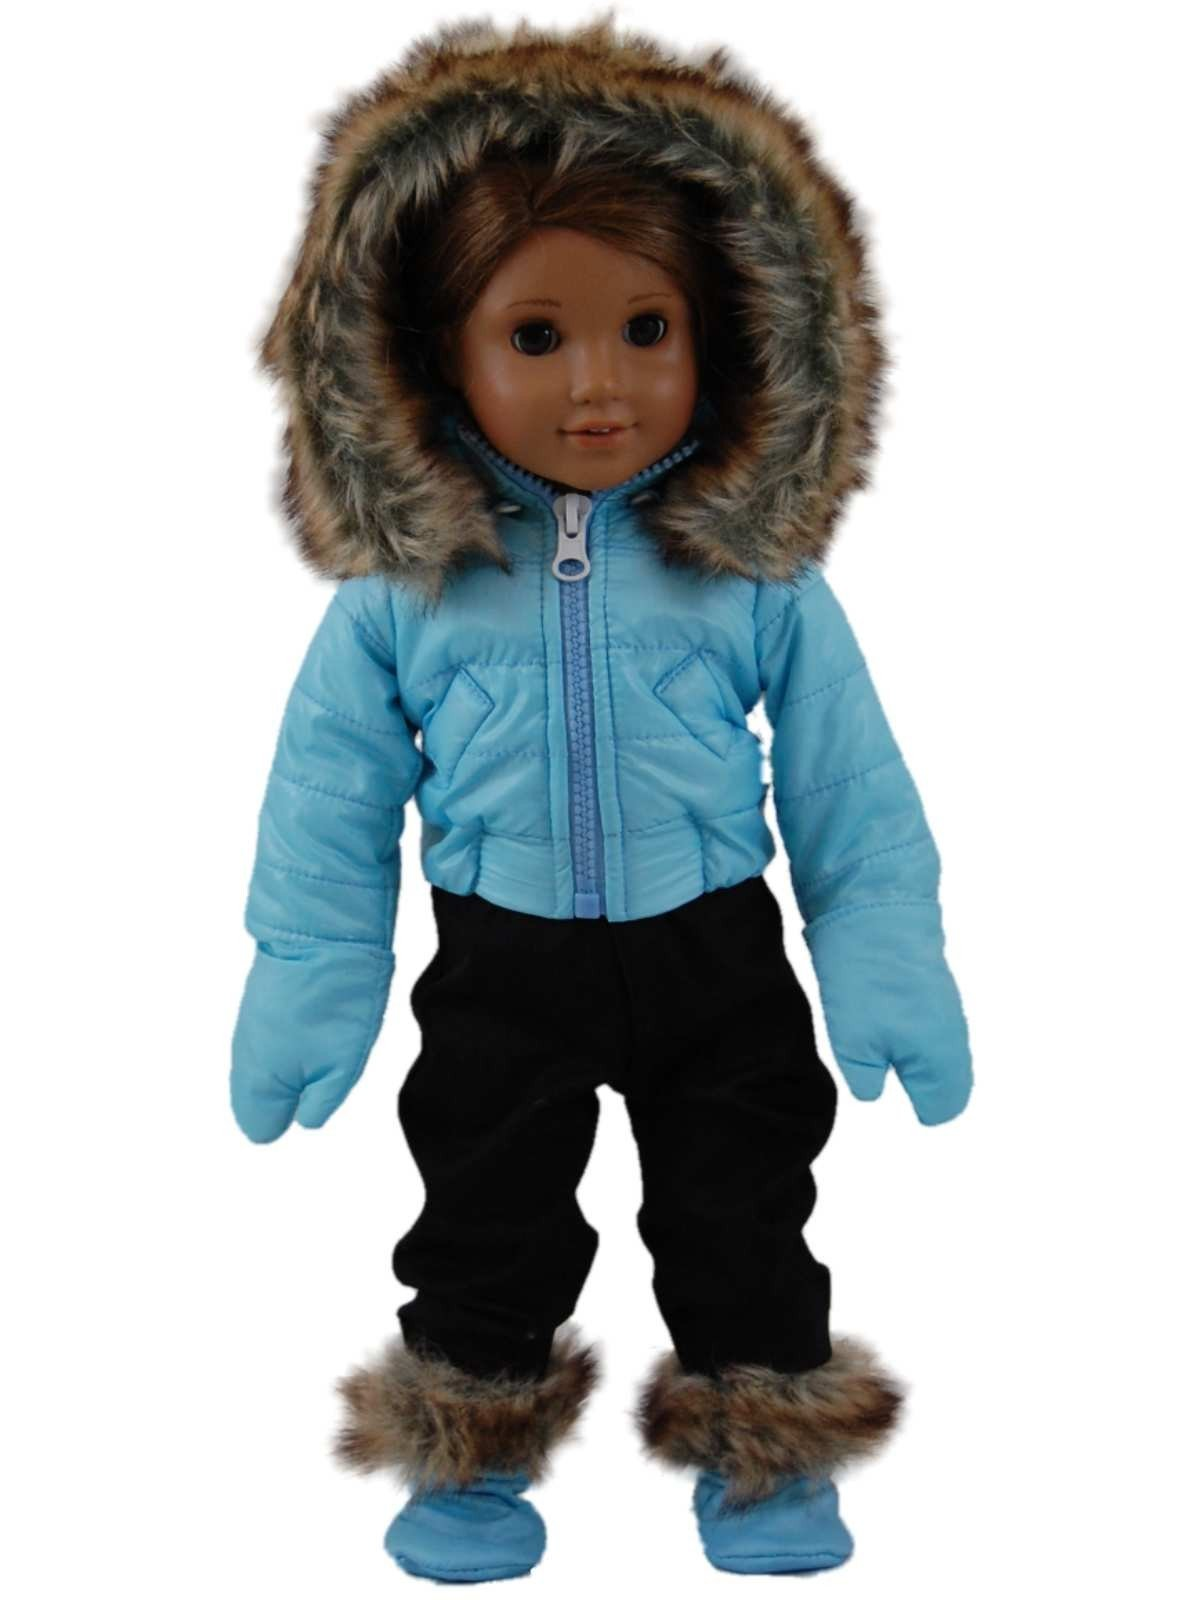 Winter Ski Time Outfit Doll Clothes For 18 Quot Dolls